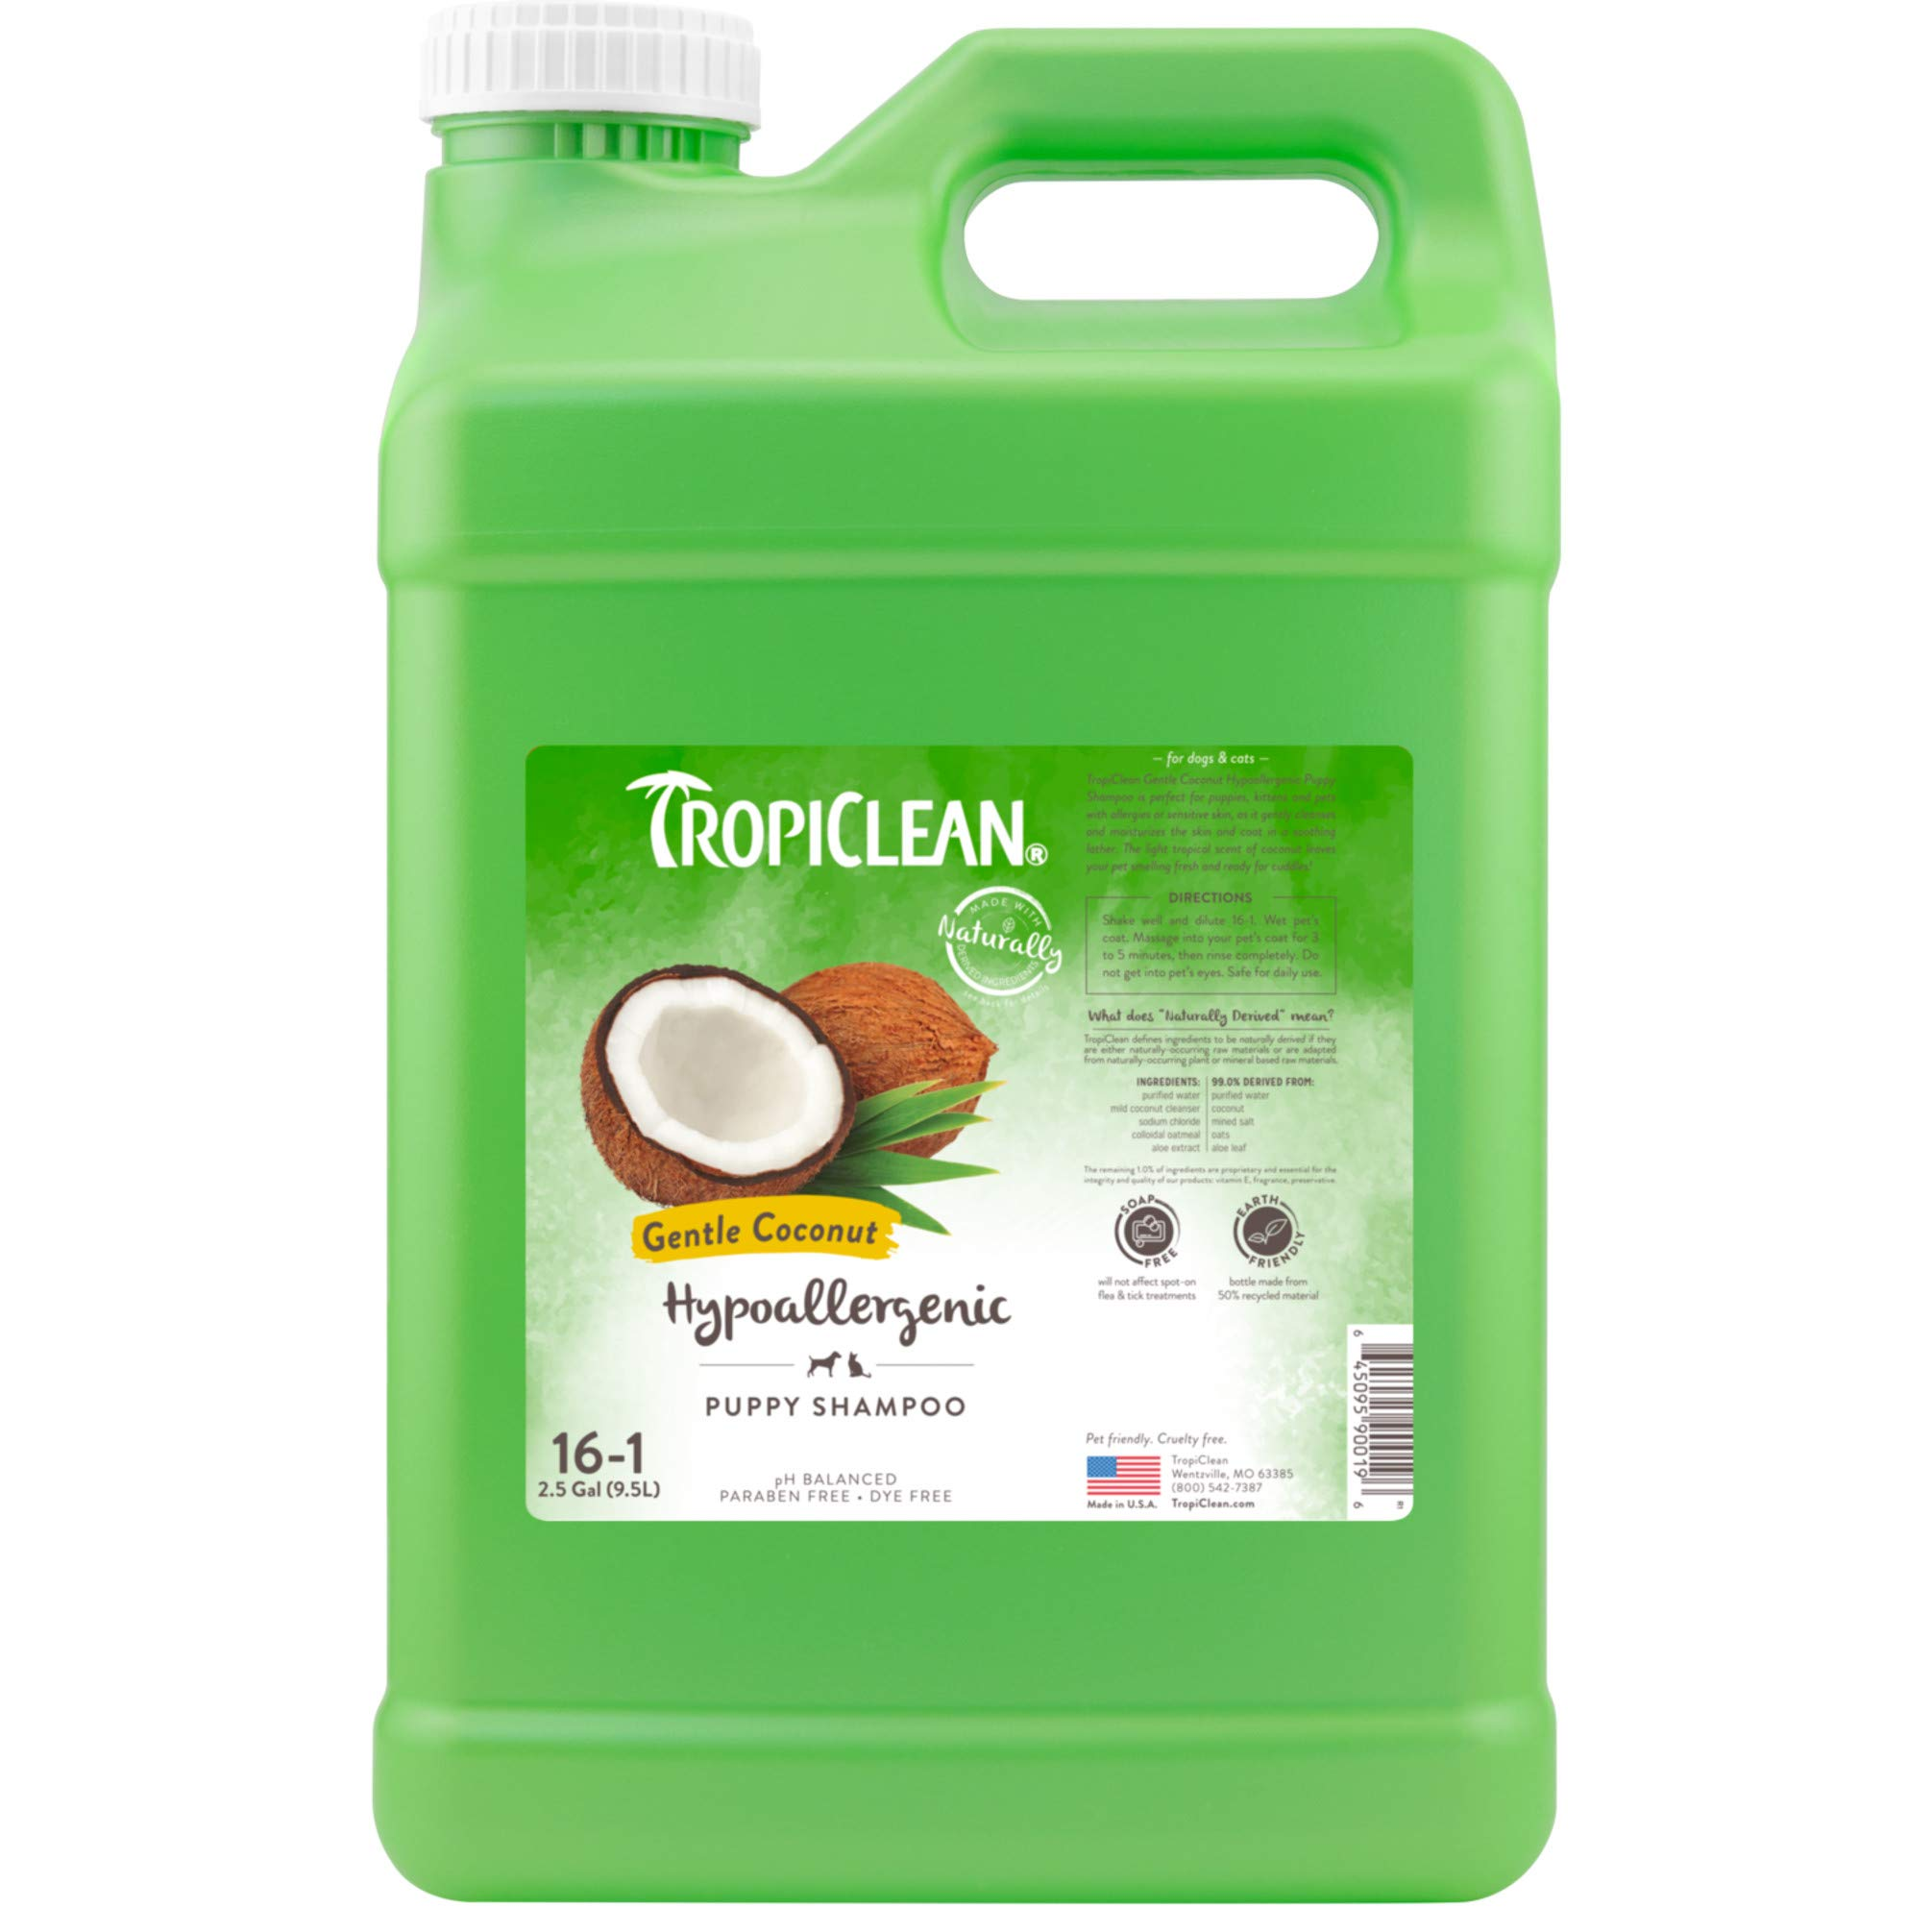 TropiClean Gentle Coconut Hypoallergenic Puppy Shampoo, 2.5 Gallon by TropiClean